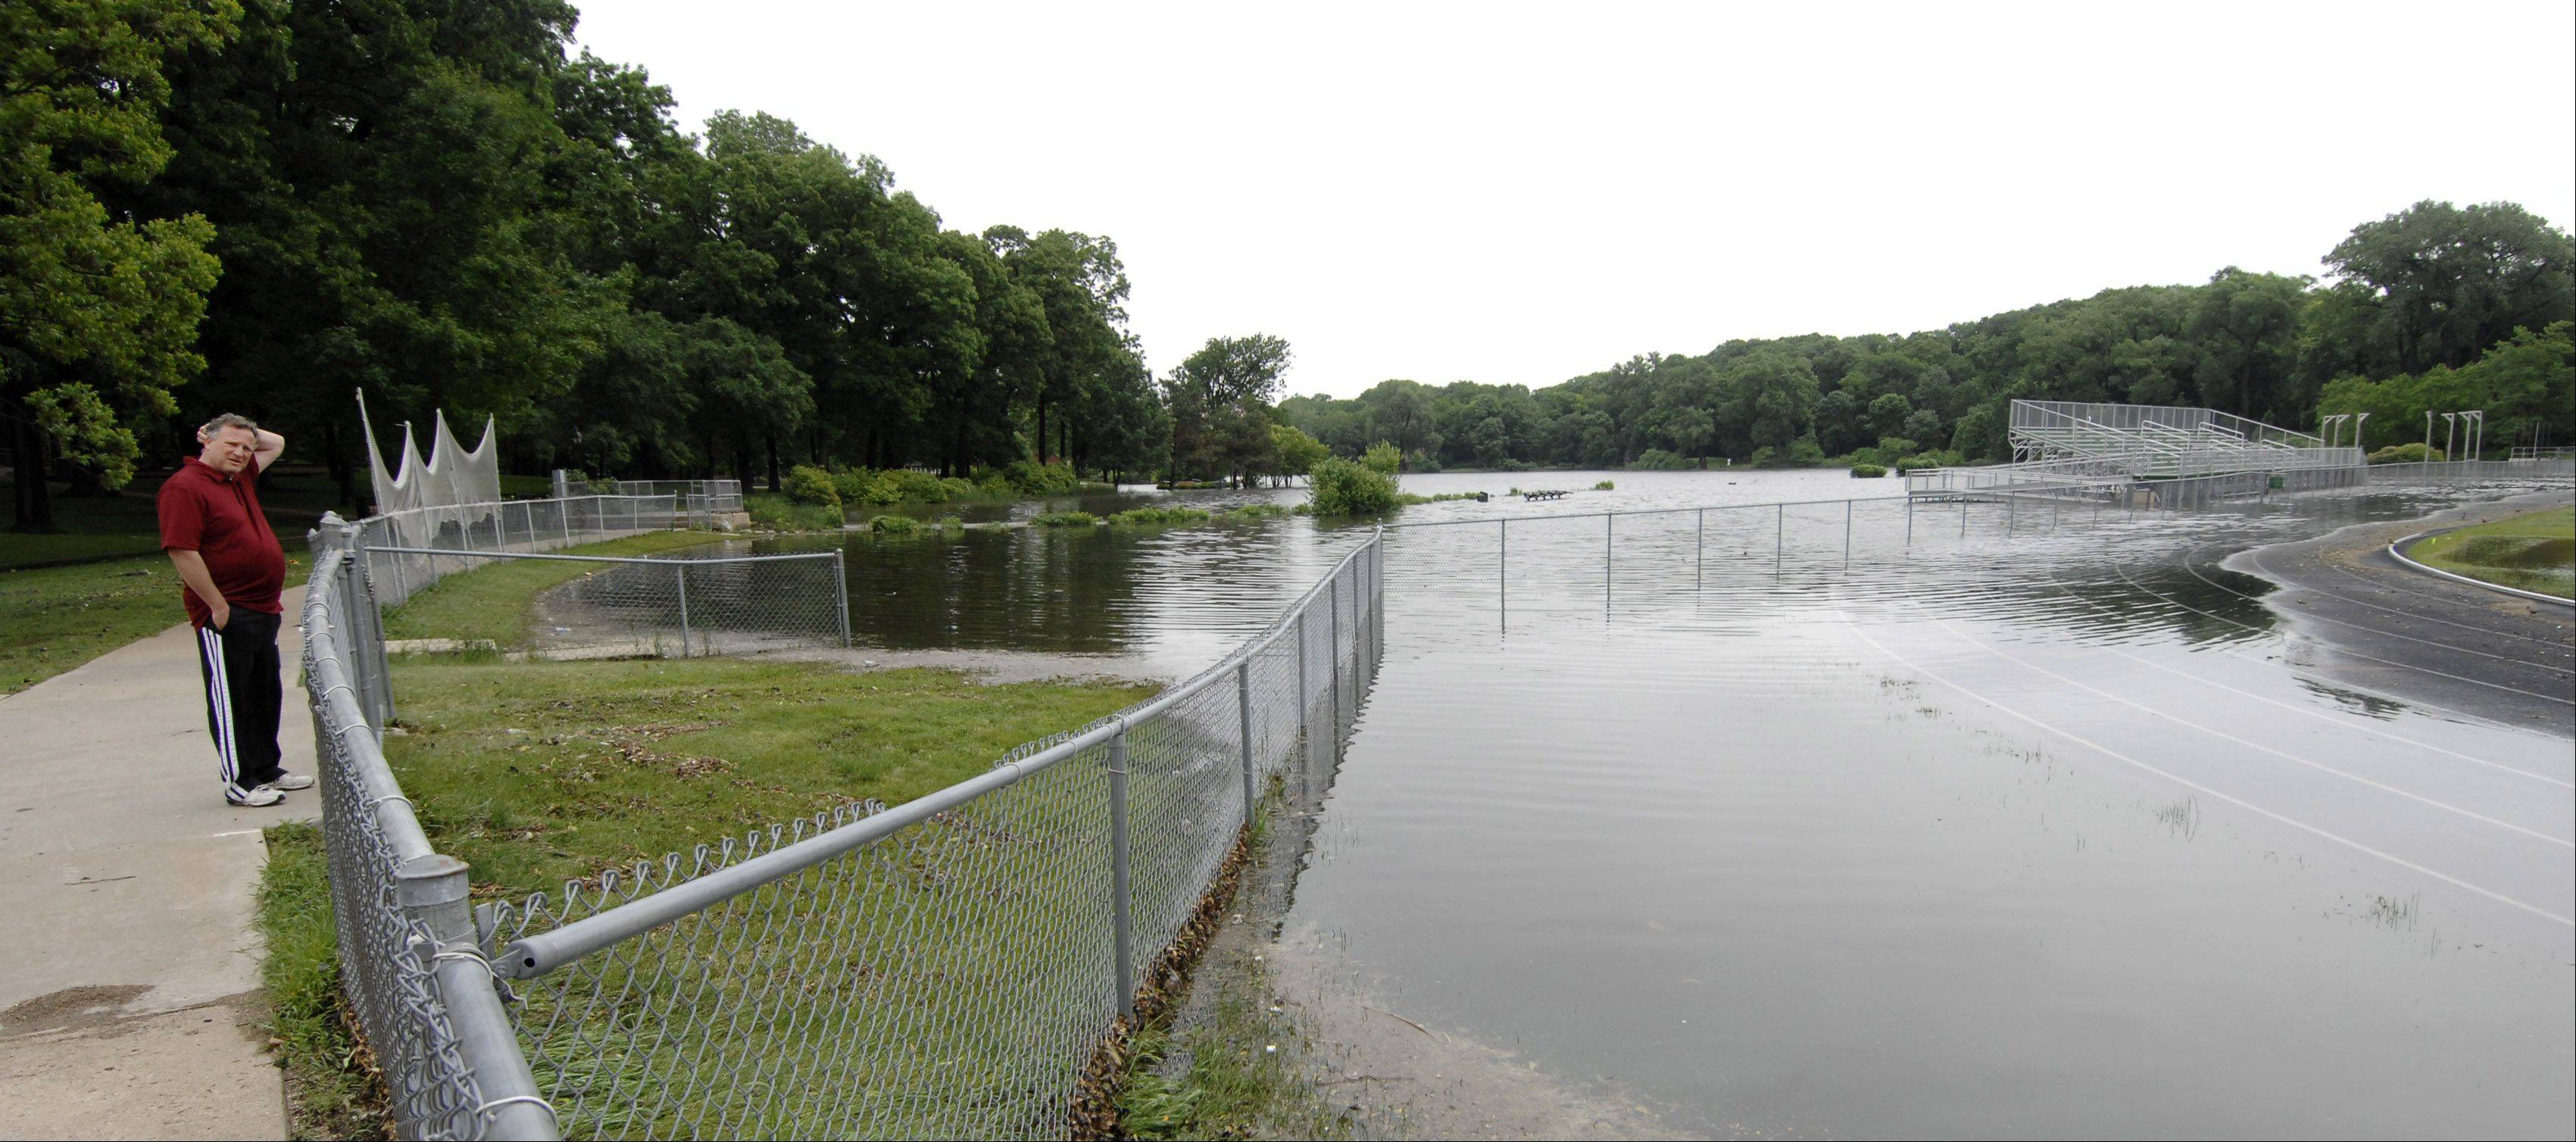 Glen Ellyn studies ways to limit Lake Ellyn flooding